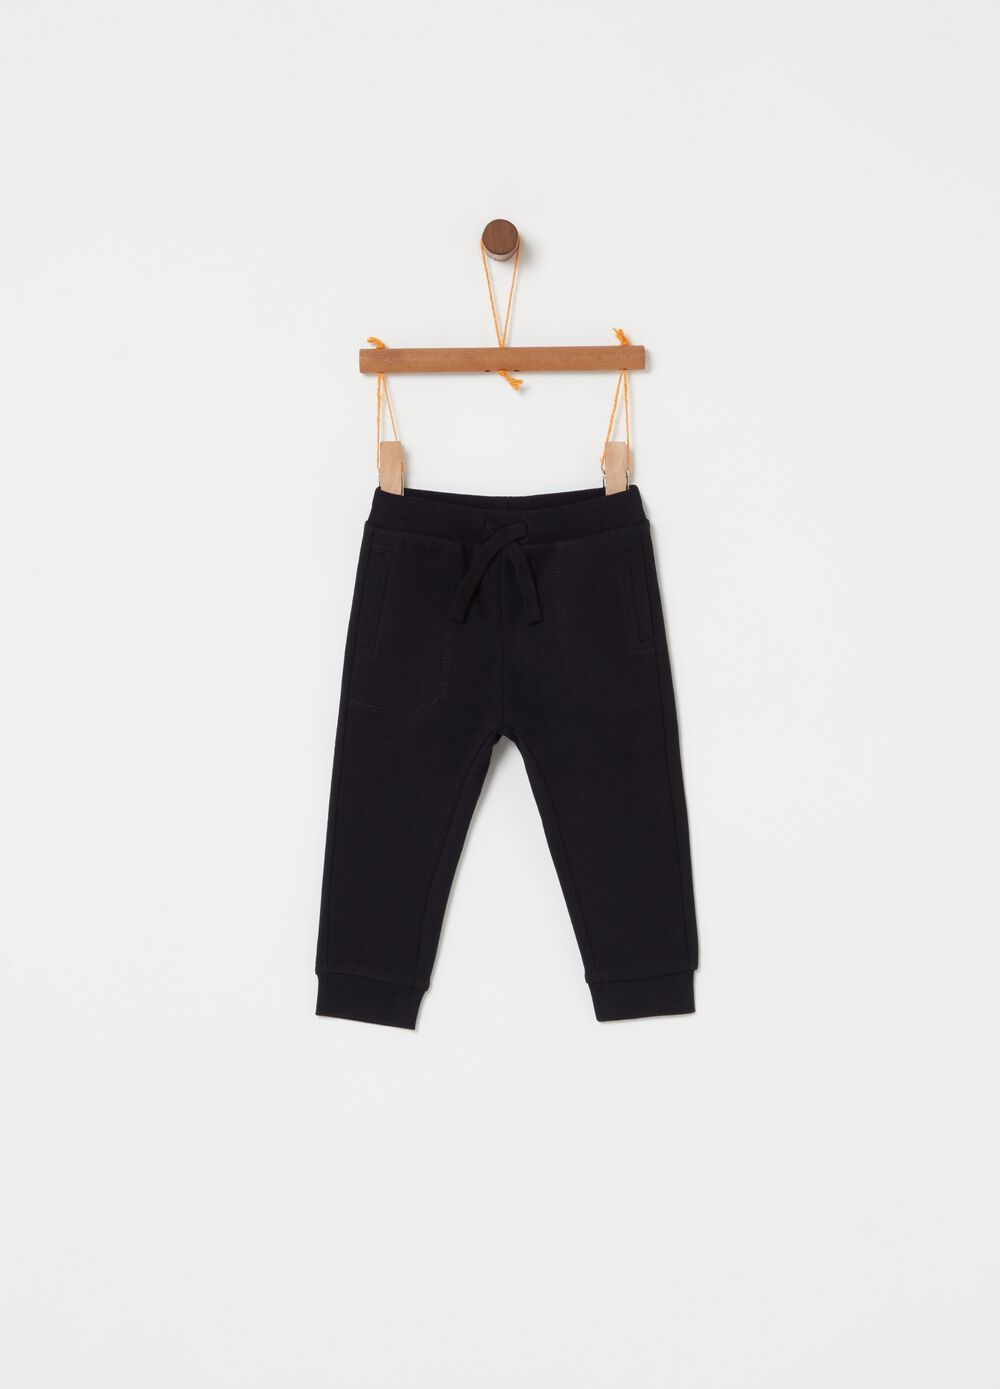 Trousers in 100% cotton fleece with pockets